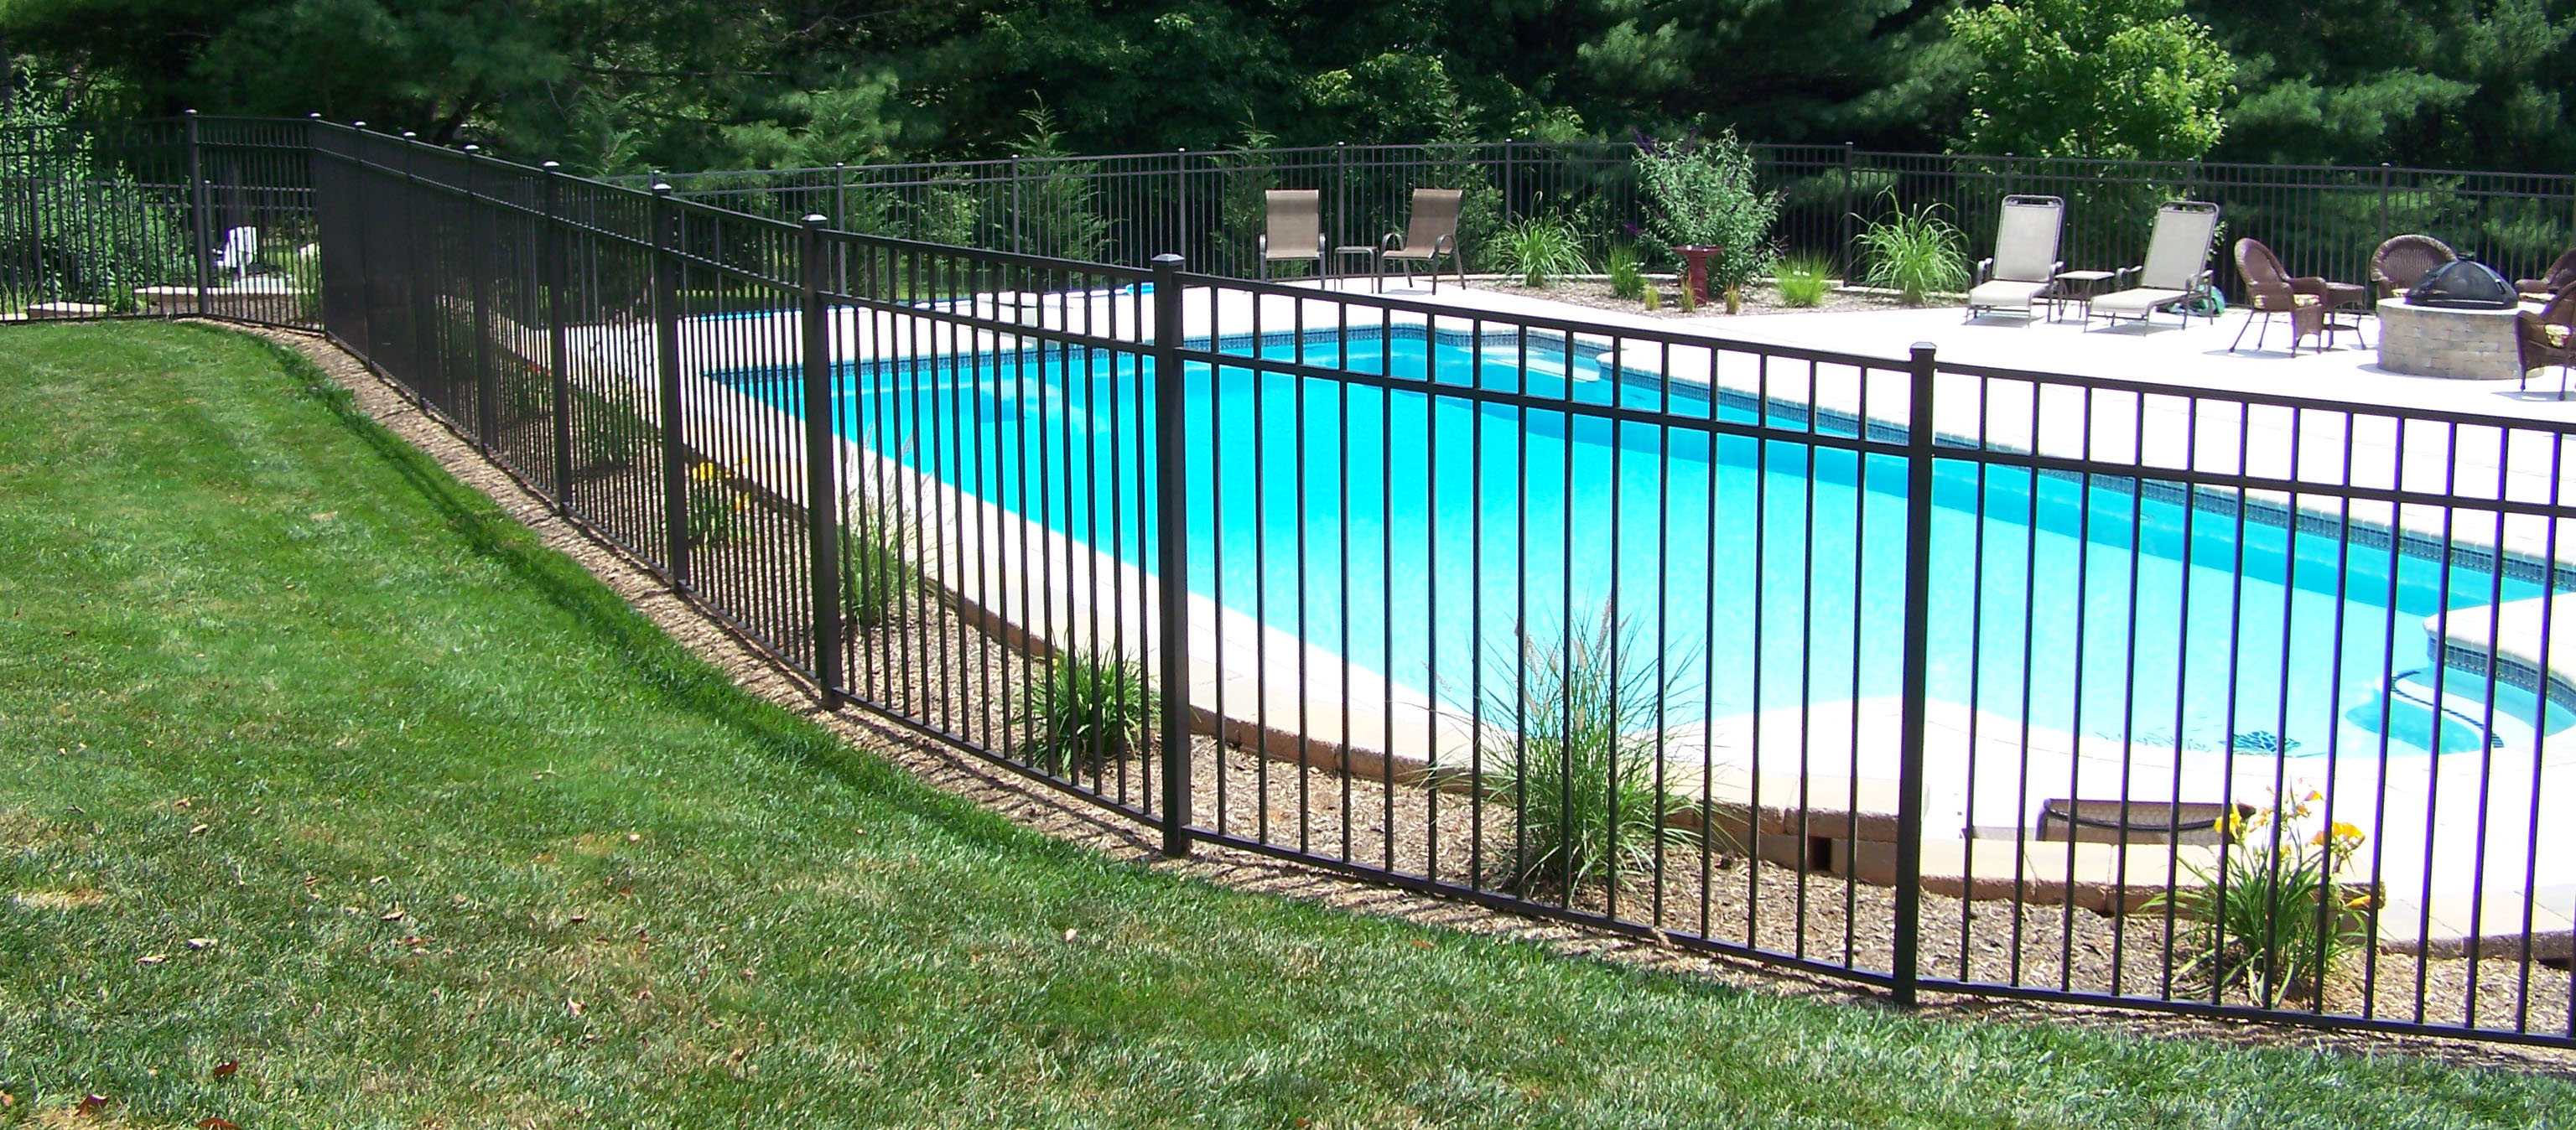 Pool Fence pool barriers (fences) – the ultimate in pool care